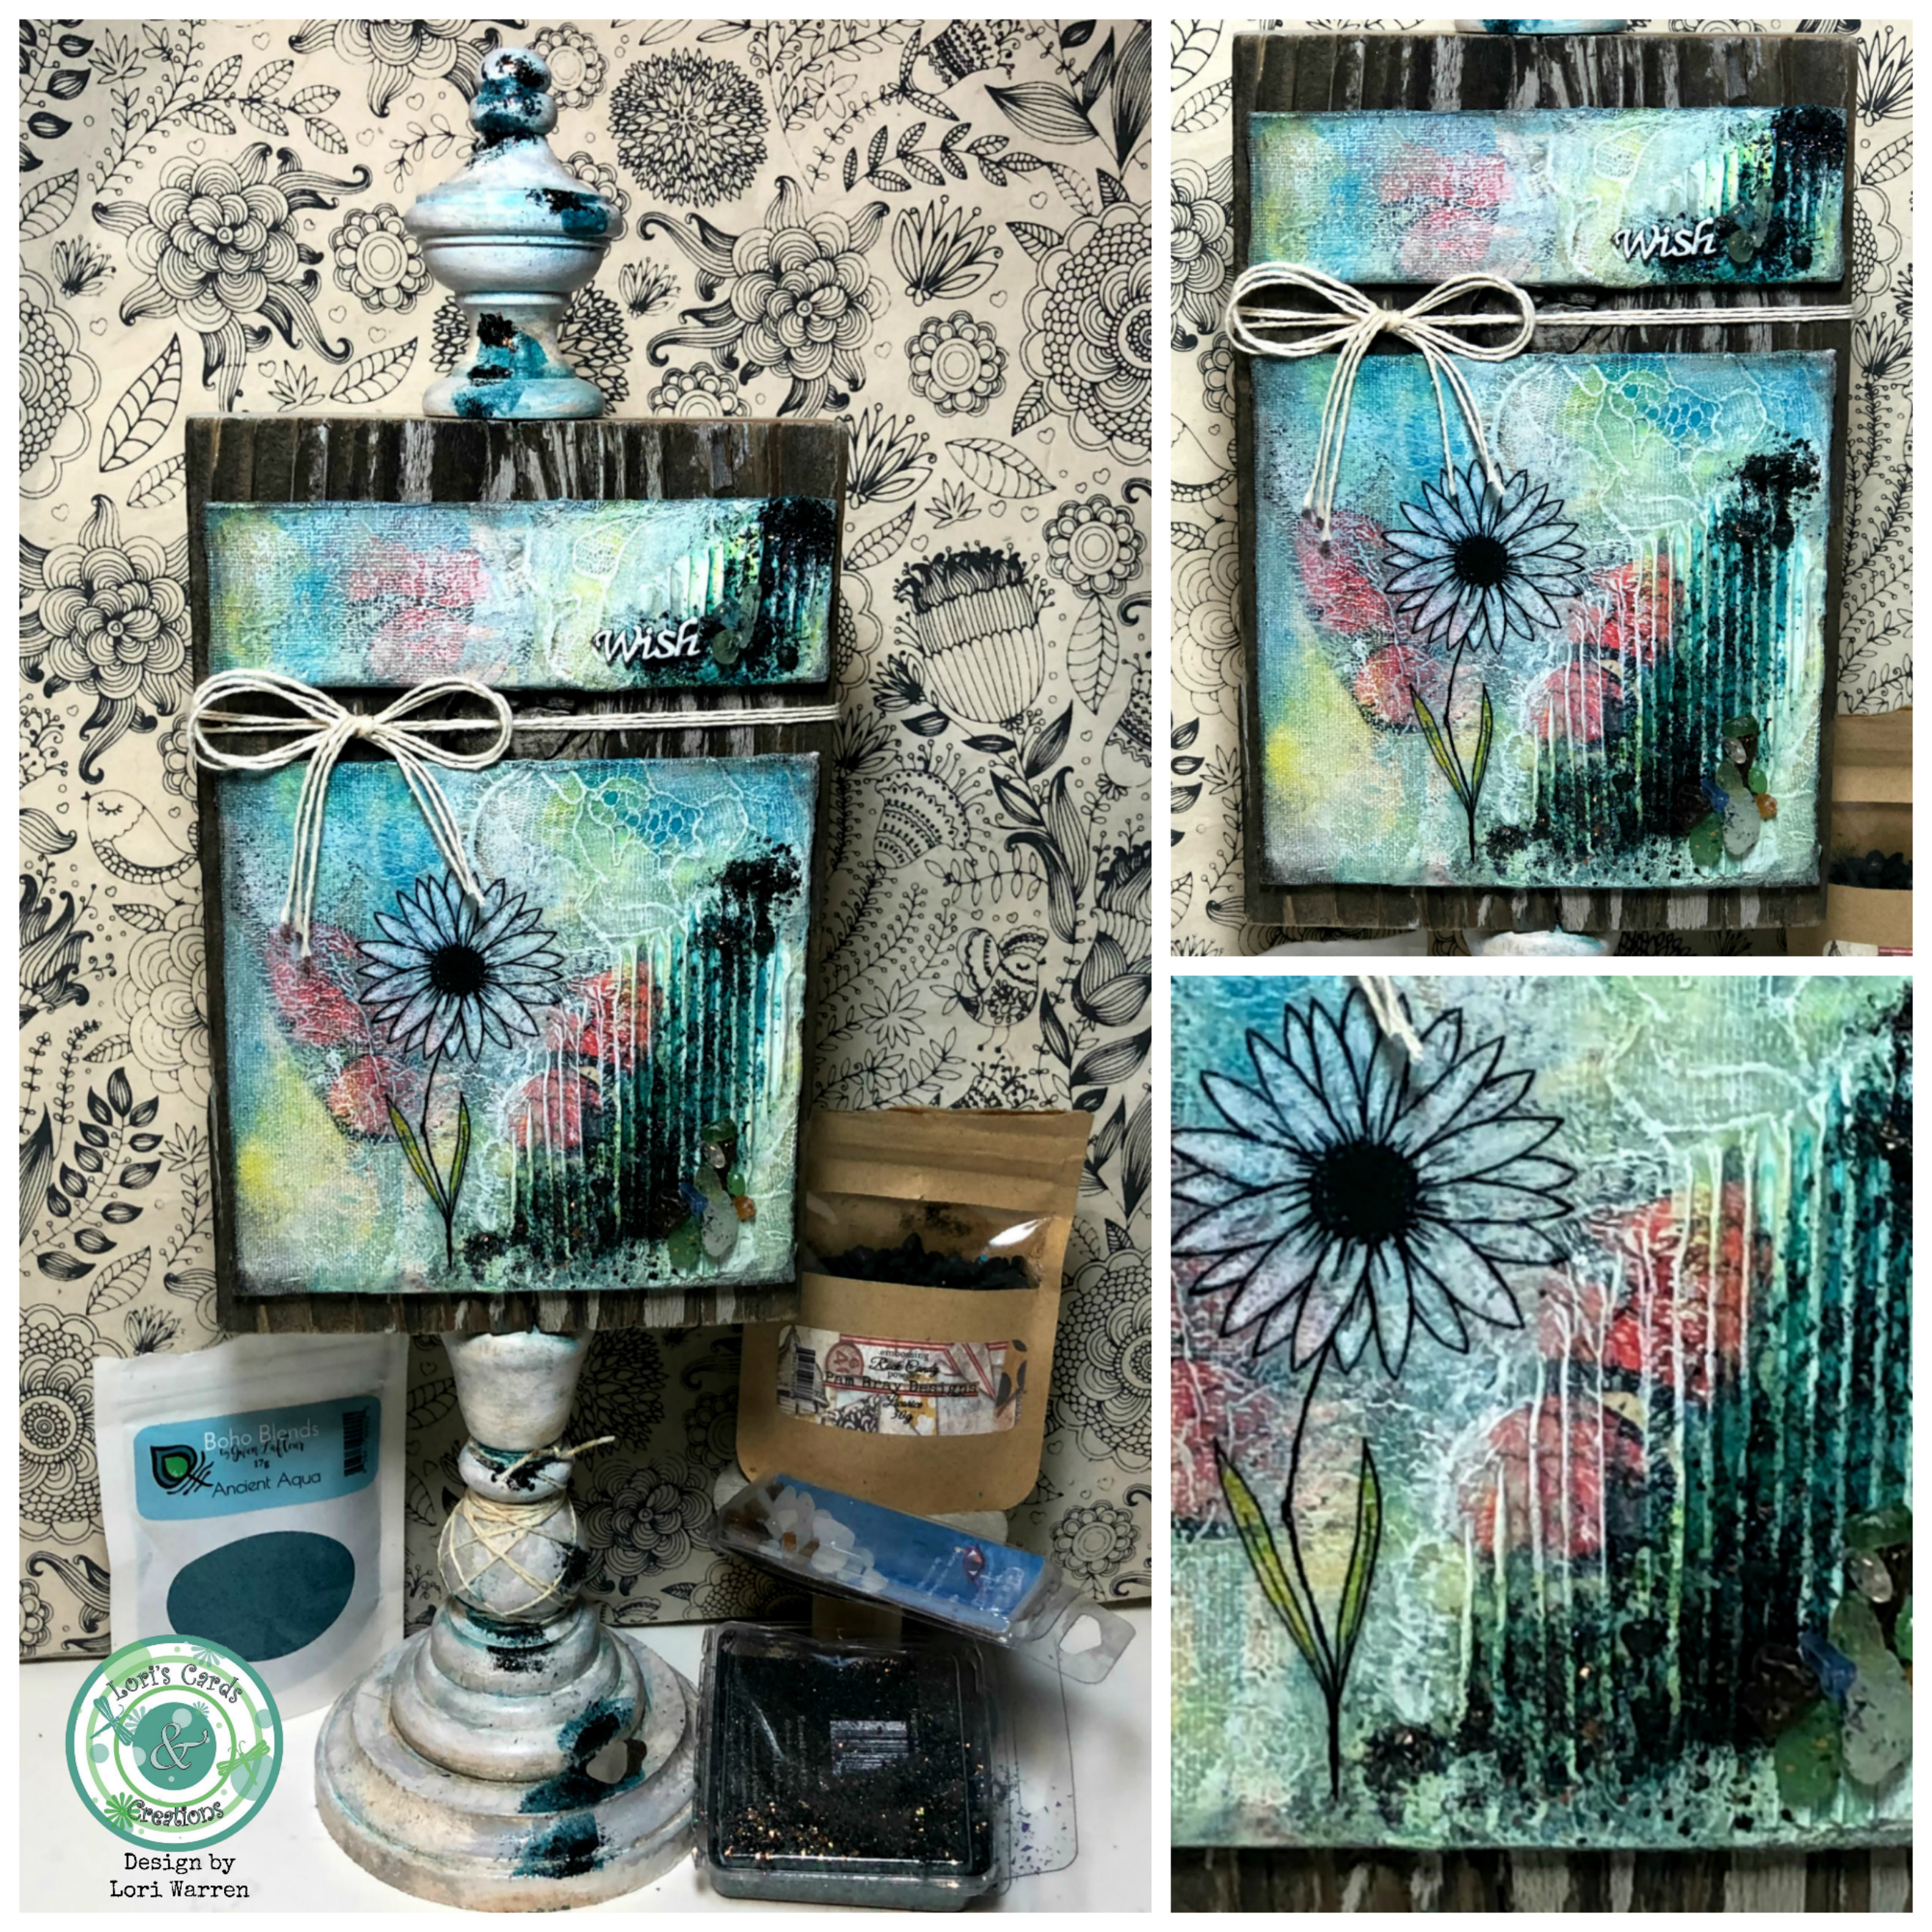 Mixed Media wishes sq collage wm